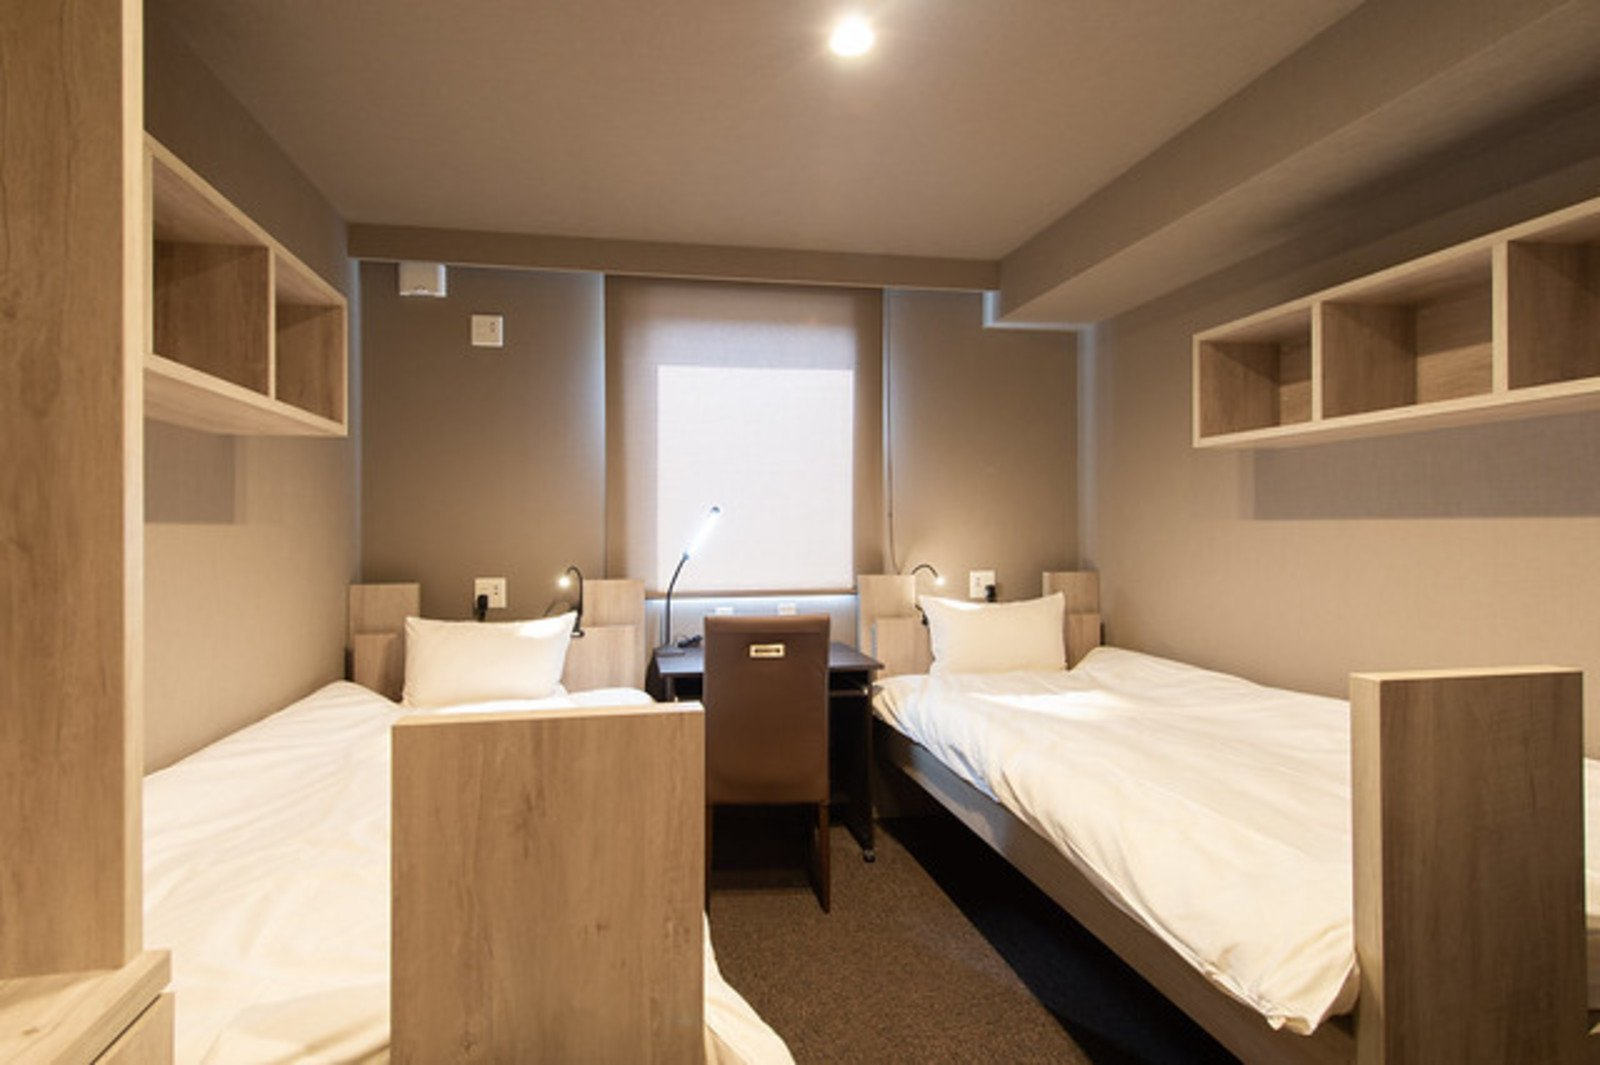 Midtown Niseko Twin Room, perfect for couple or duo travelers